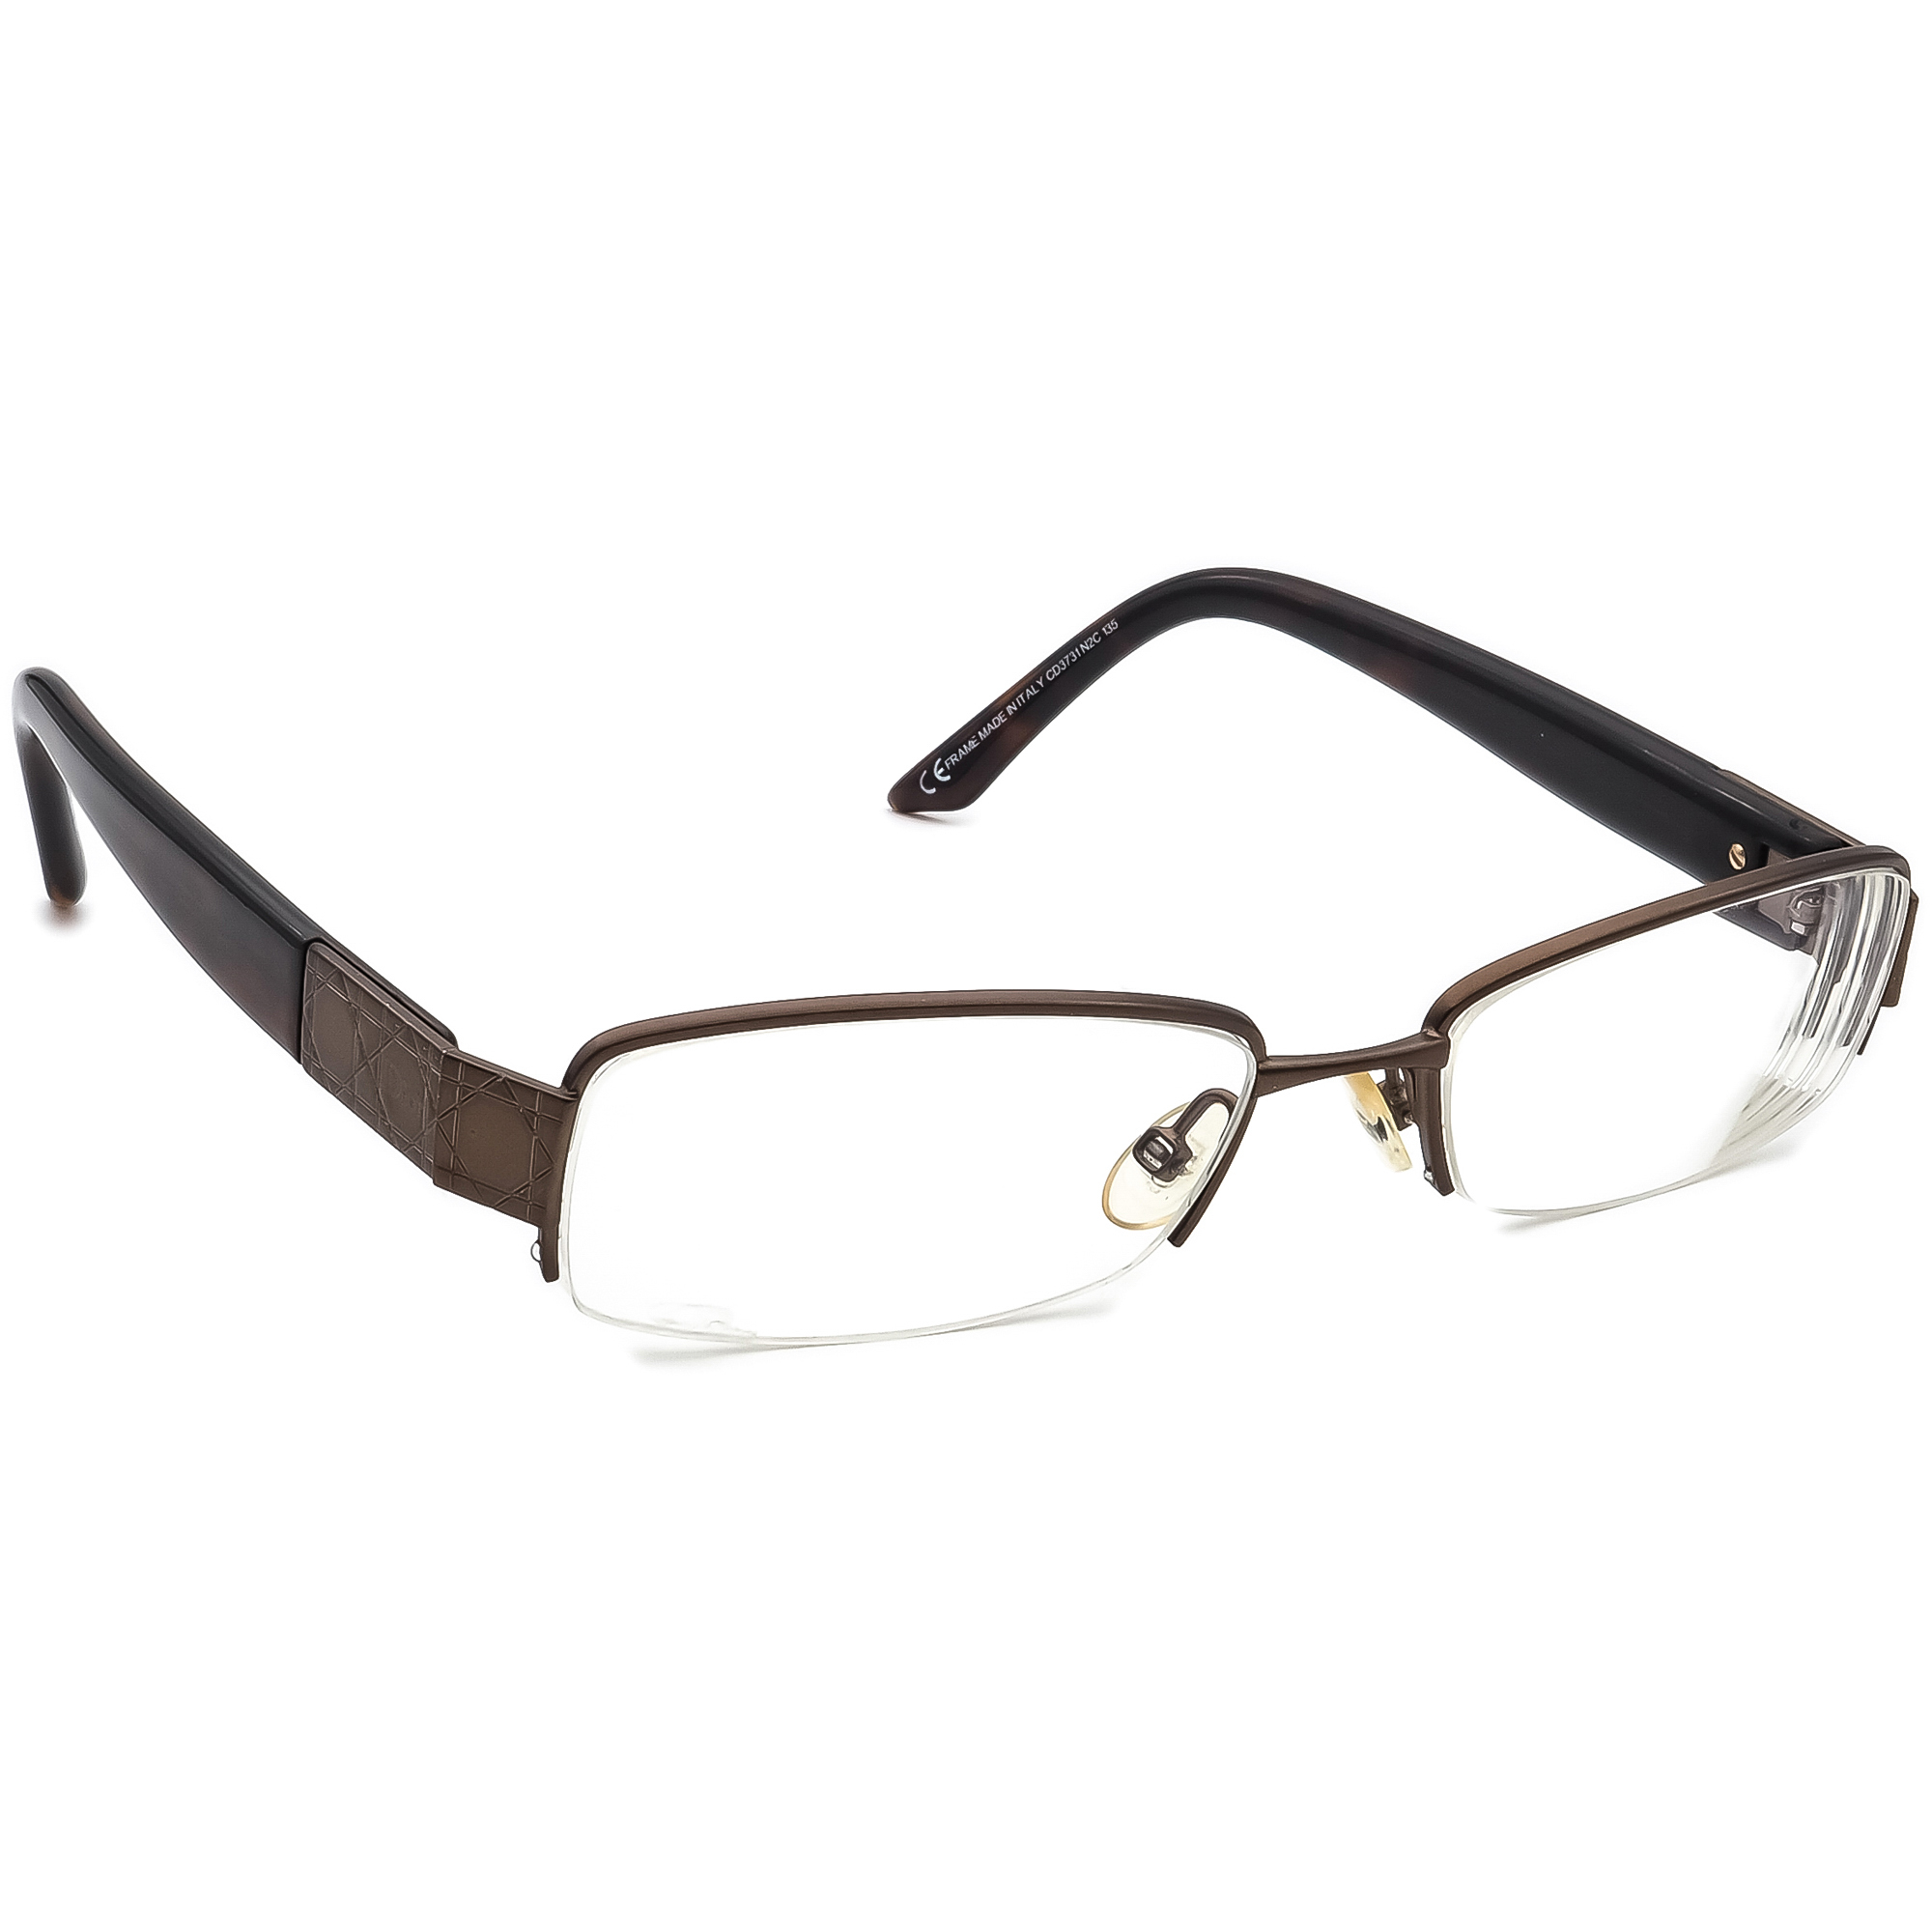 Christian Dior Eyeglasses CD 3731 N2C Brown Half Rim Frame Italy 51[]17 135